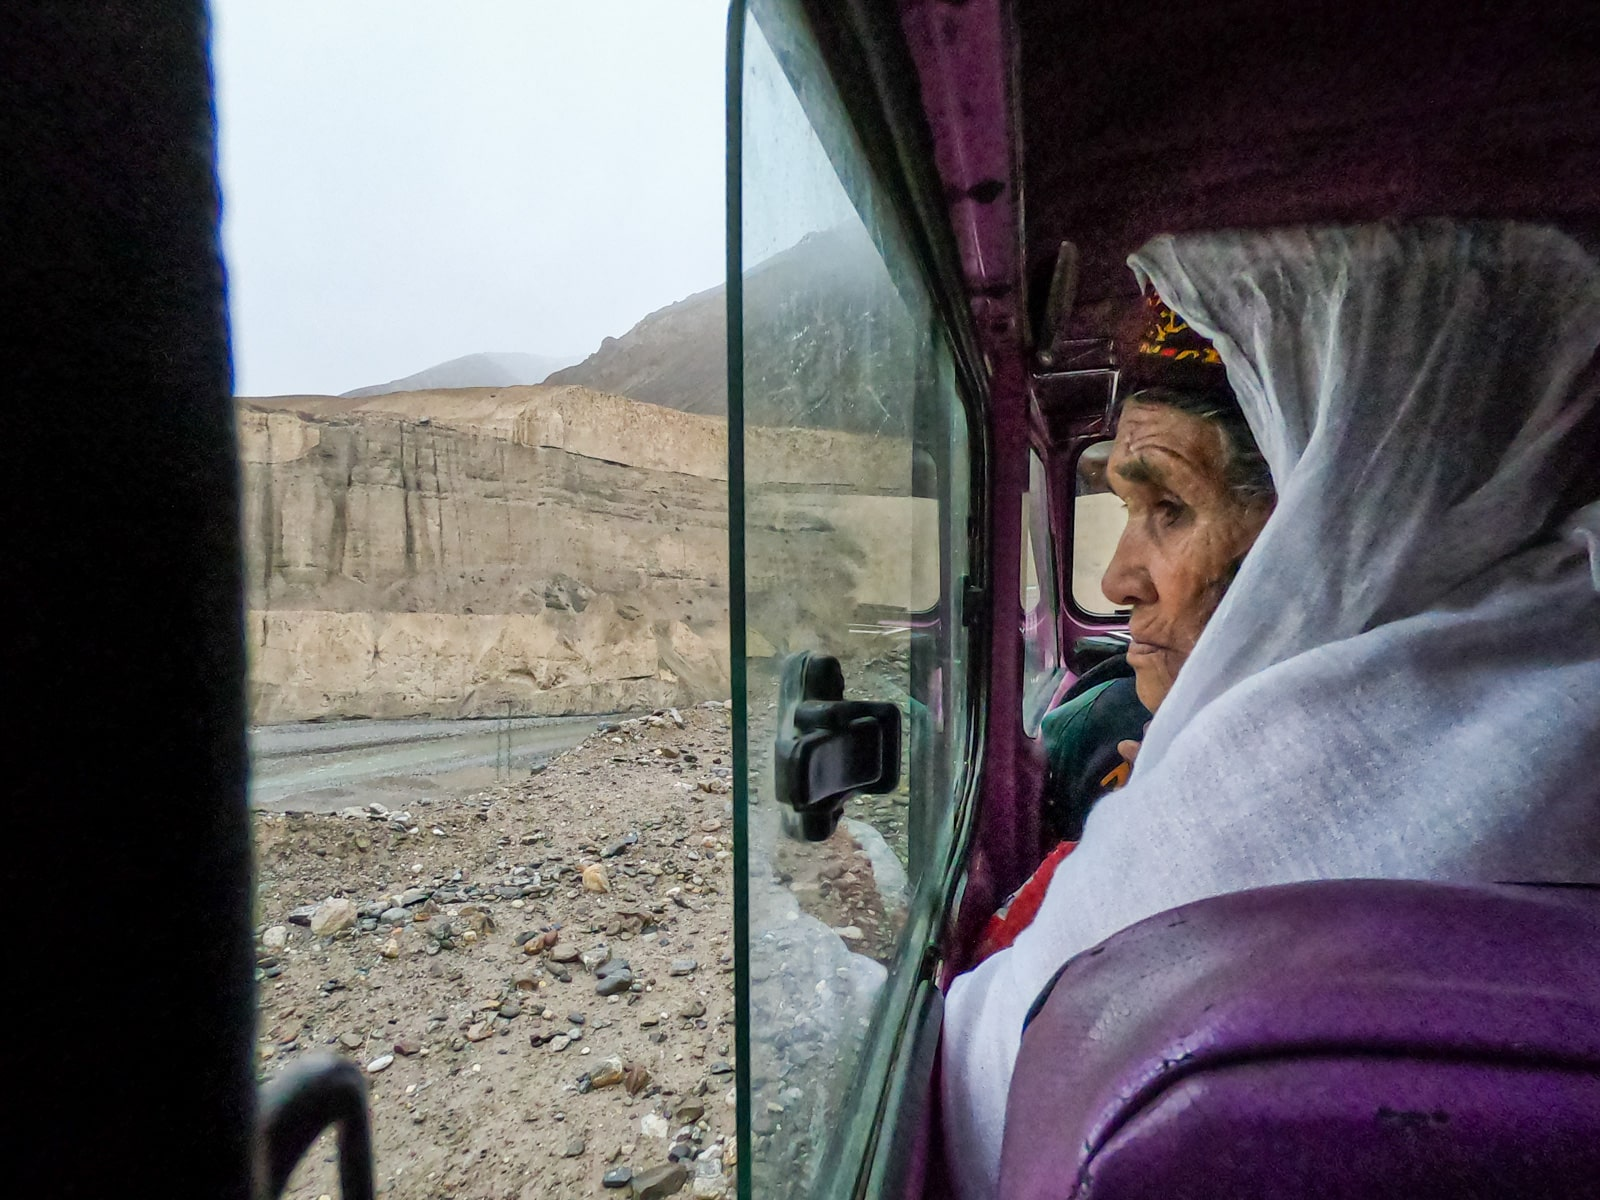 Old woman looking out the window in the jeep to Chapursan Valley